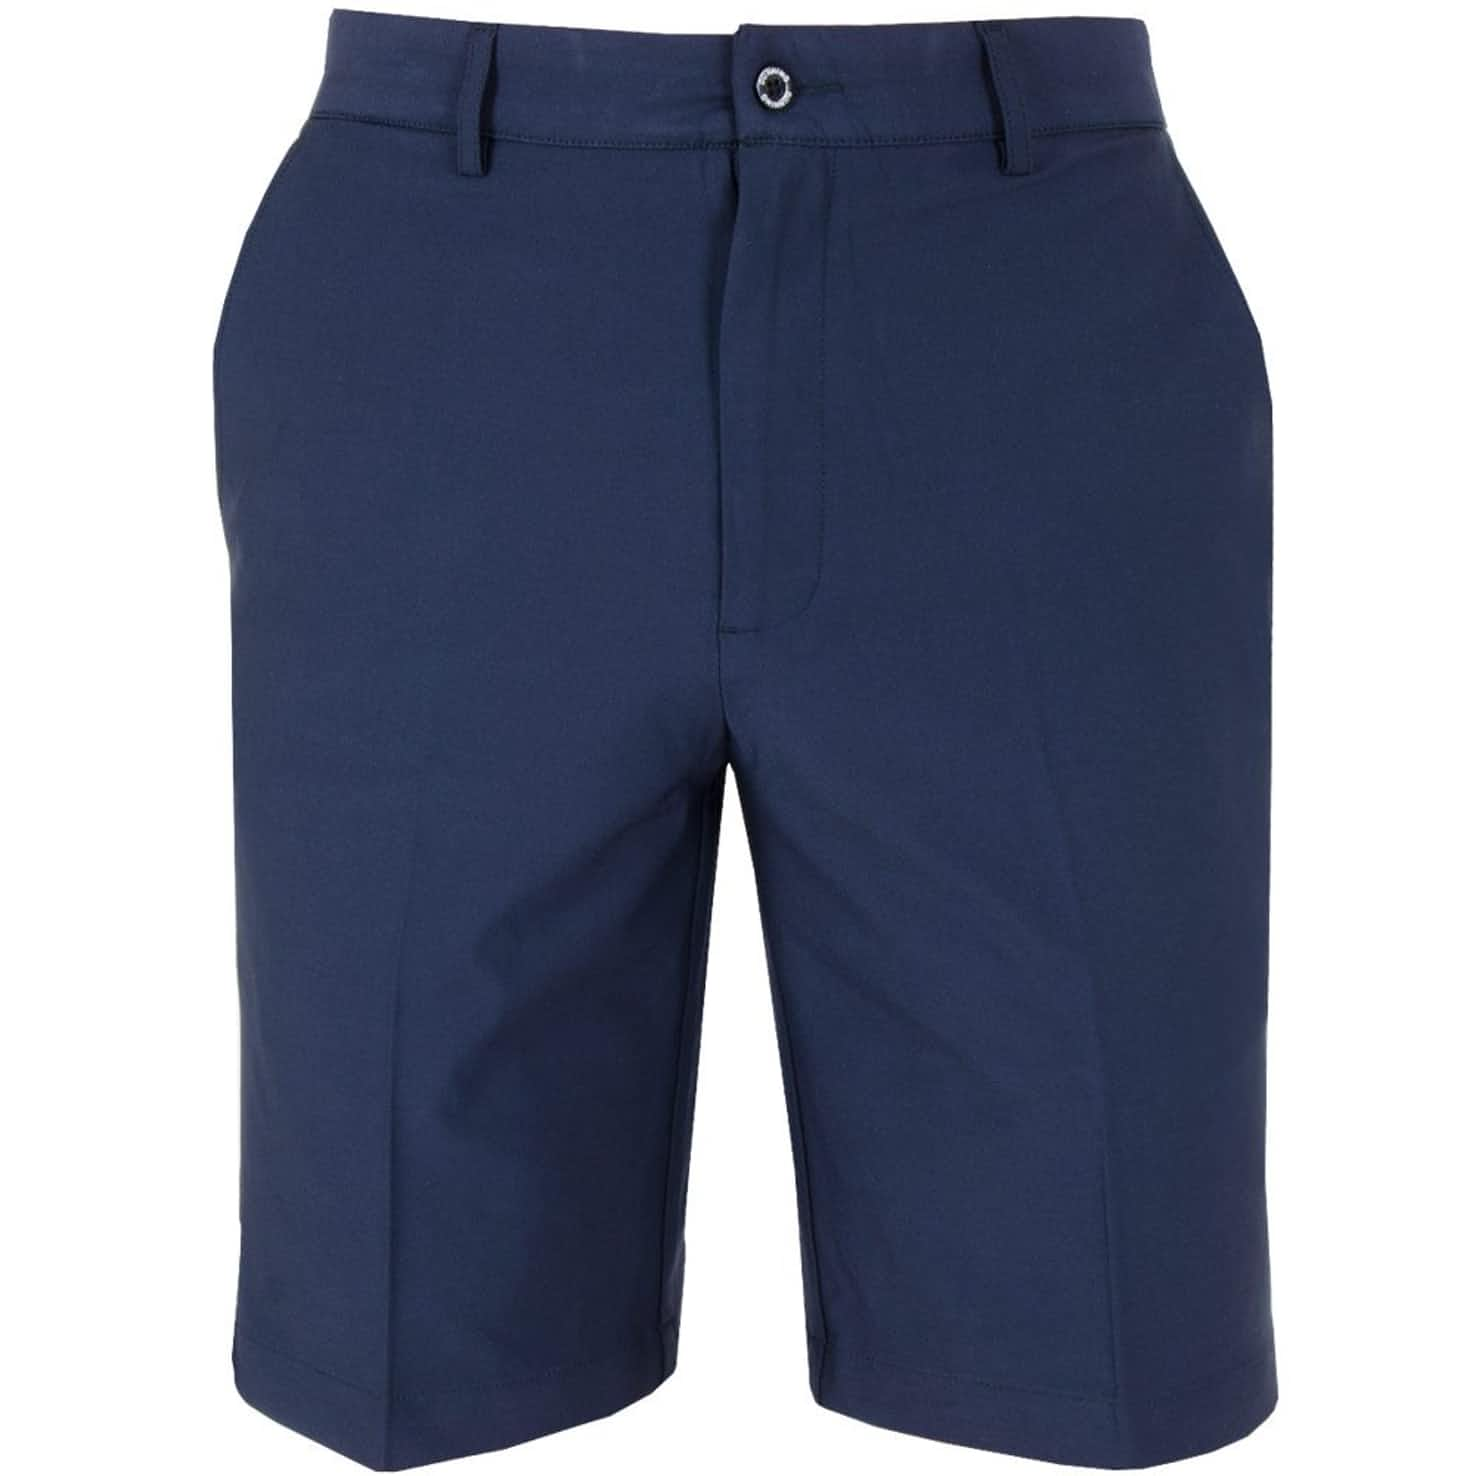 Player Fit Woven Short Halo - 2020